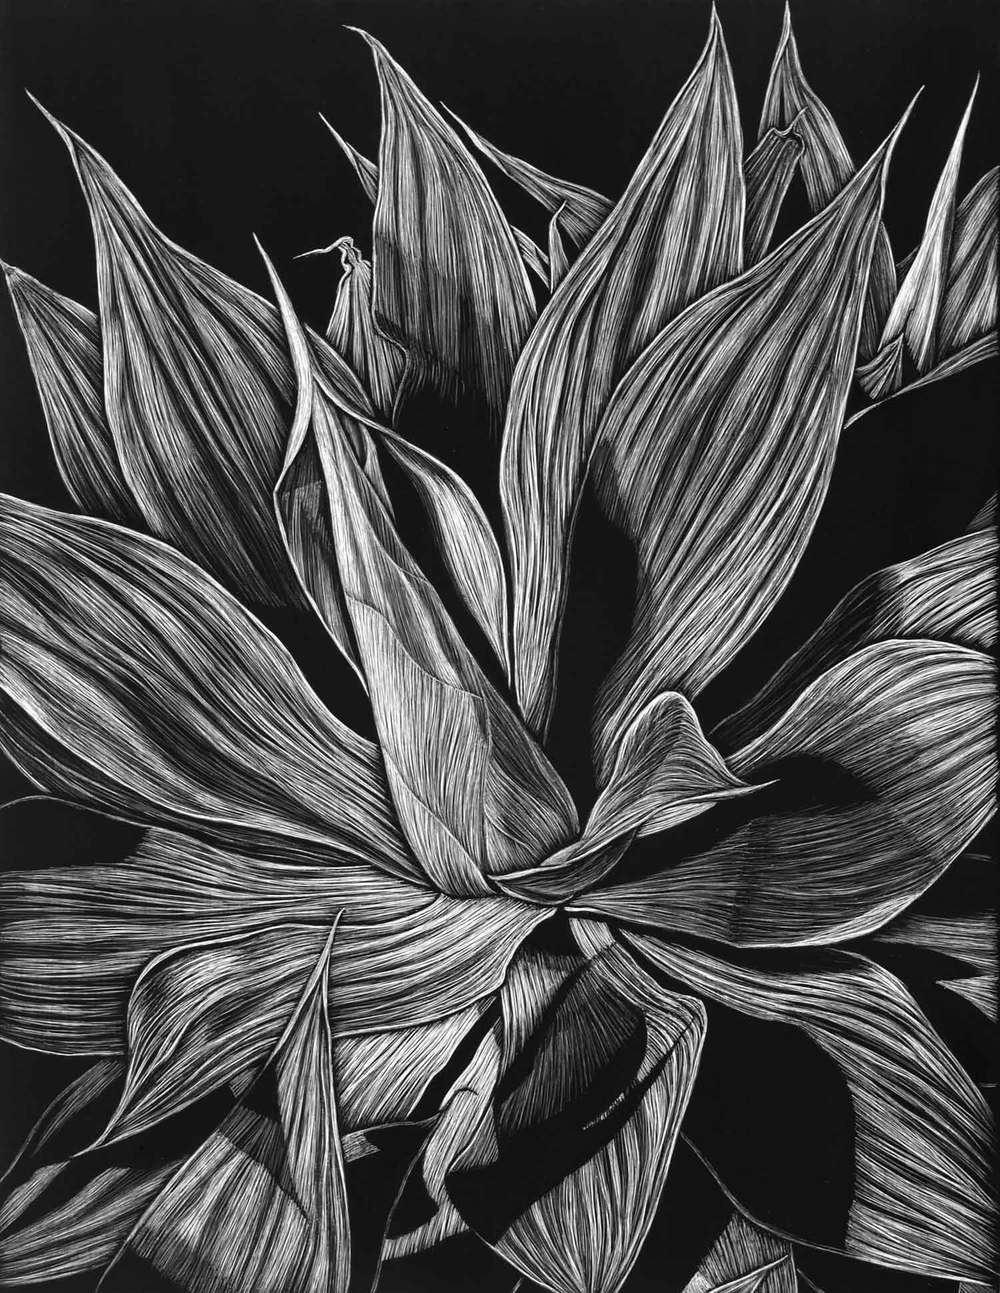 AGAVE, CLAREVILLE BEACH II  45.5 X 35.5 CM    EDITION OF 50  PIGMENT ON COTTON RAG PAPER  $750